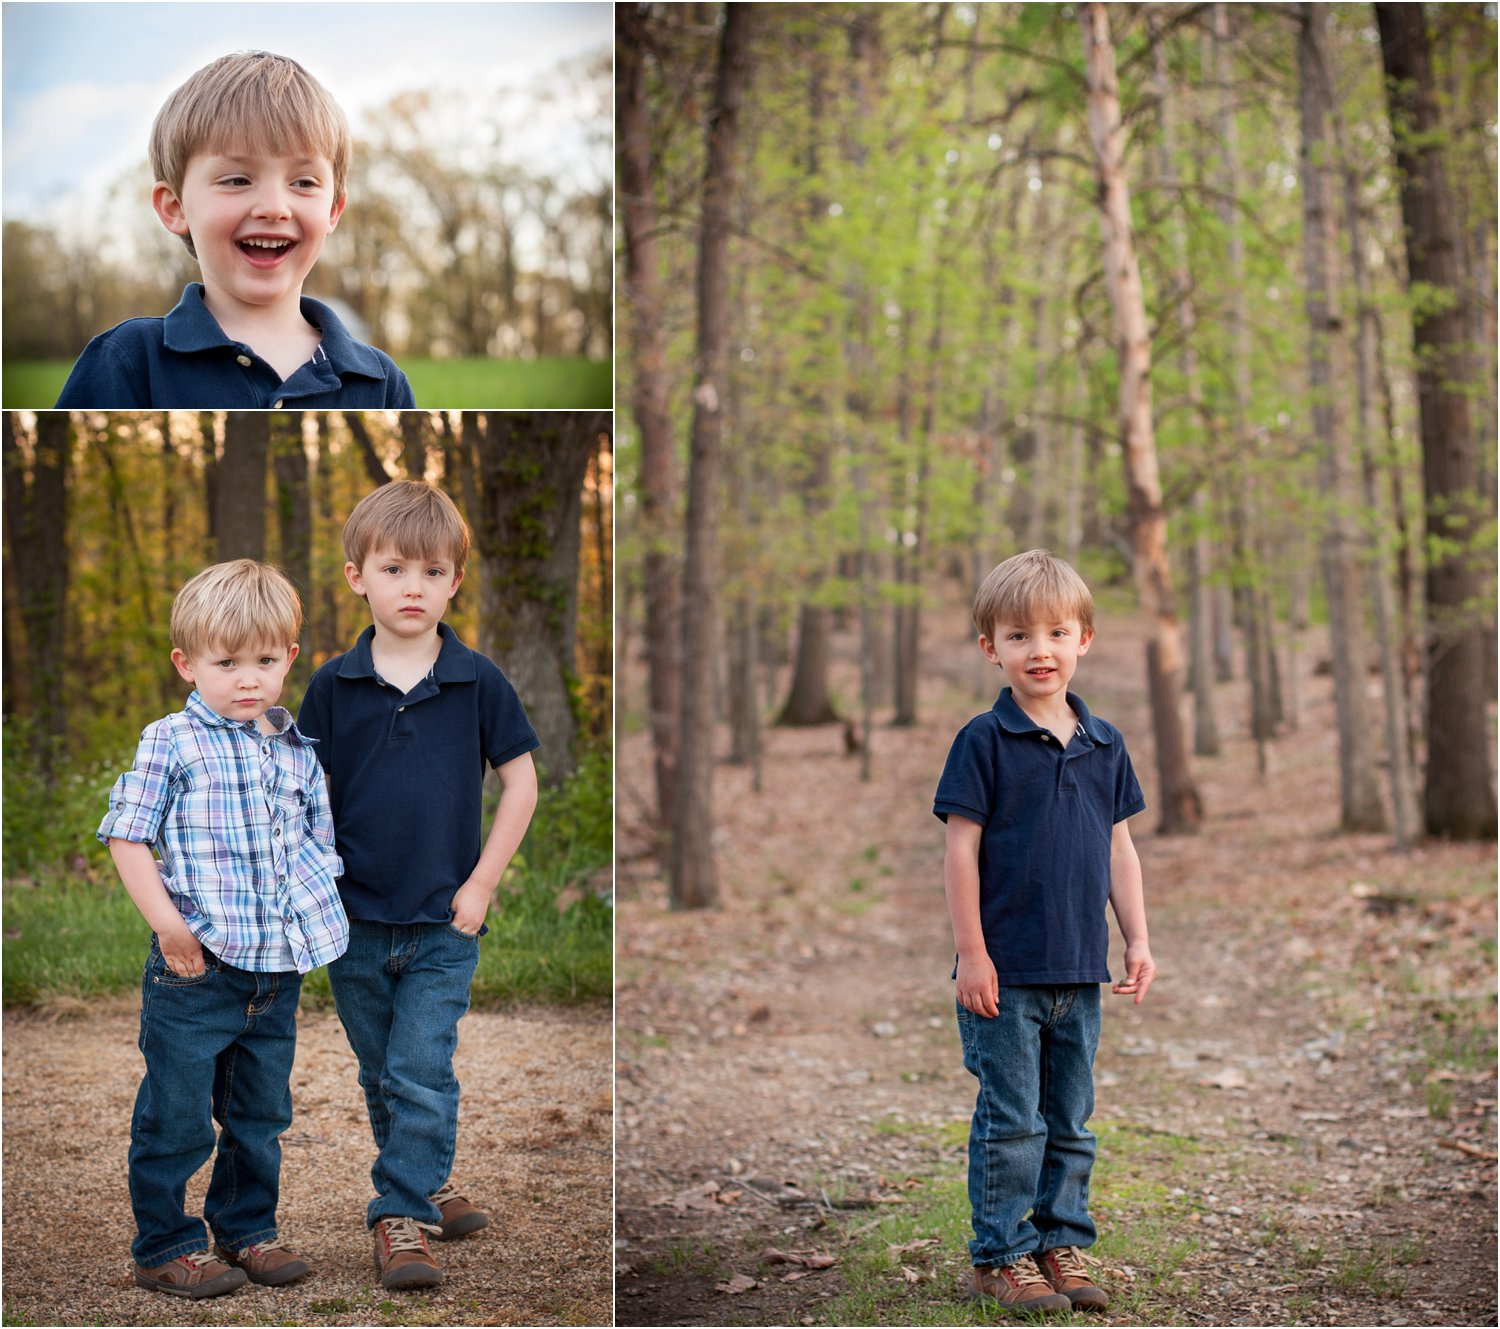 Harrisonburg_Family_Portraits_Nelsons_0020.jpg